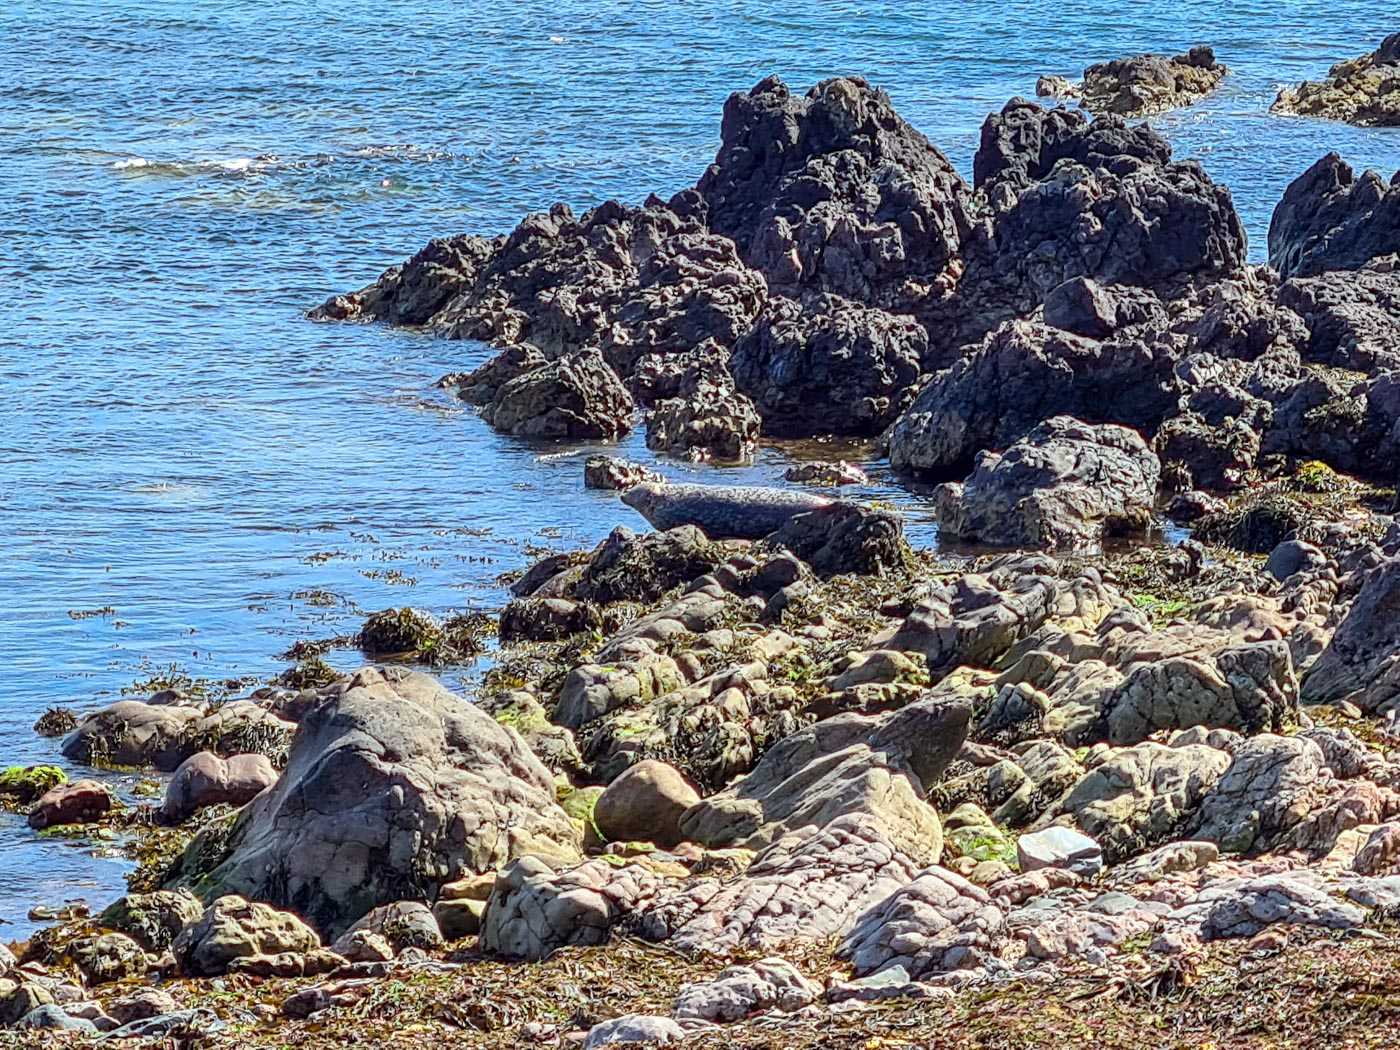 Rocks by the sea. There are allegedly seals on these rocks. I can just see rocks. But then I don't do animals.